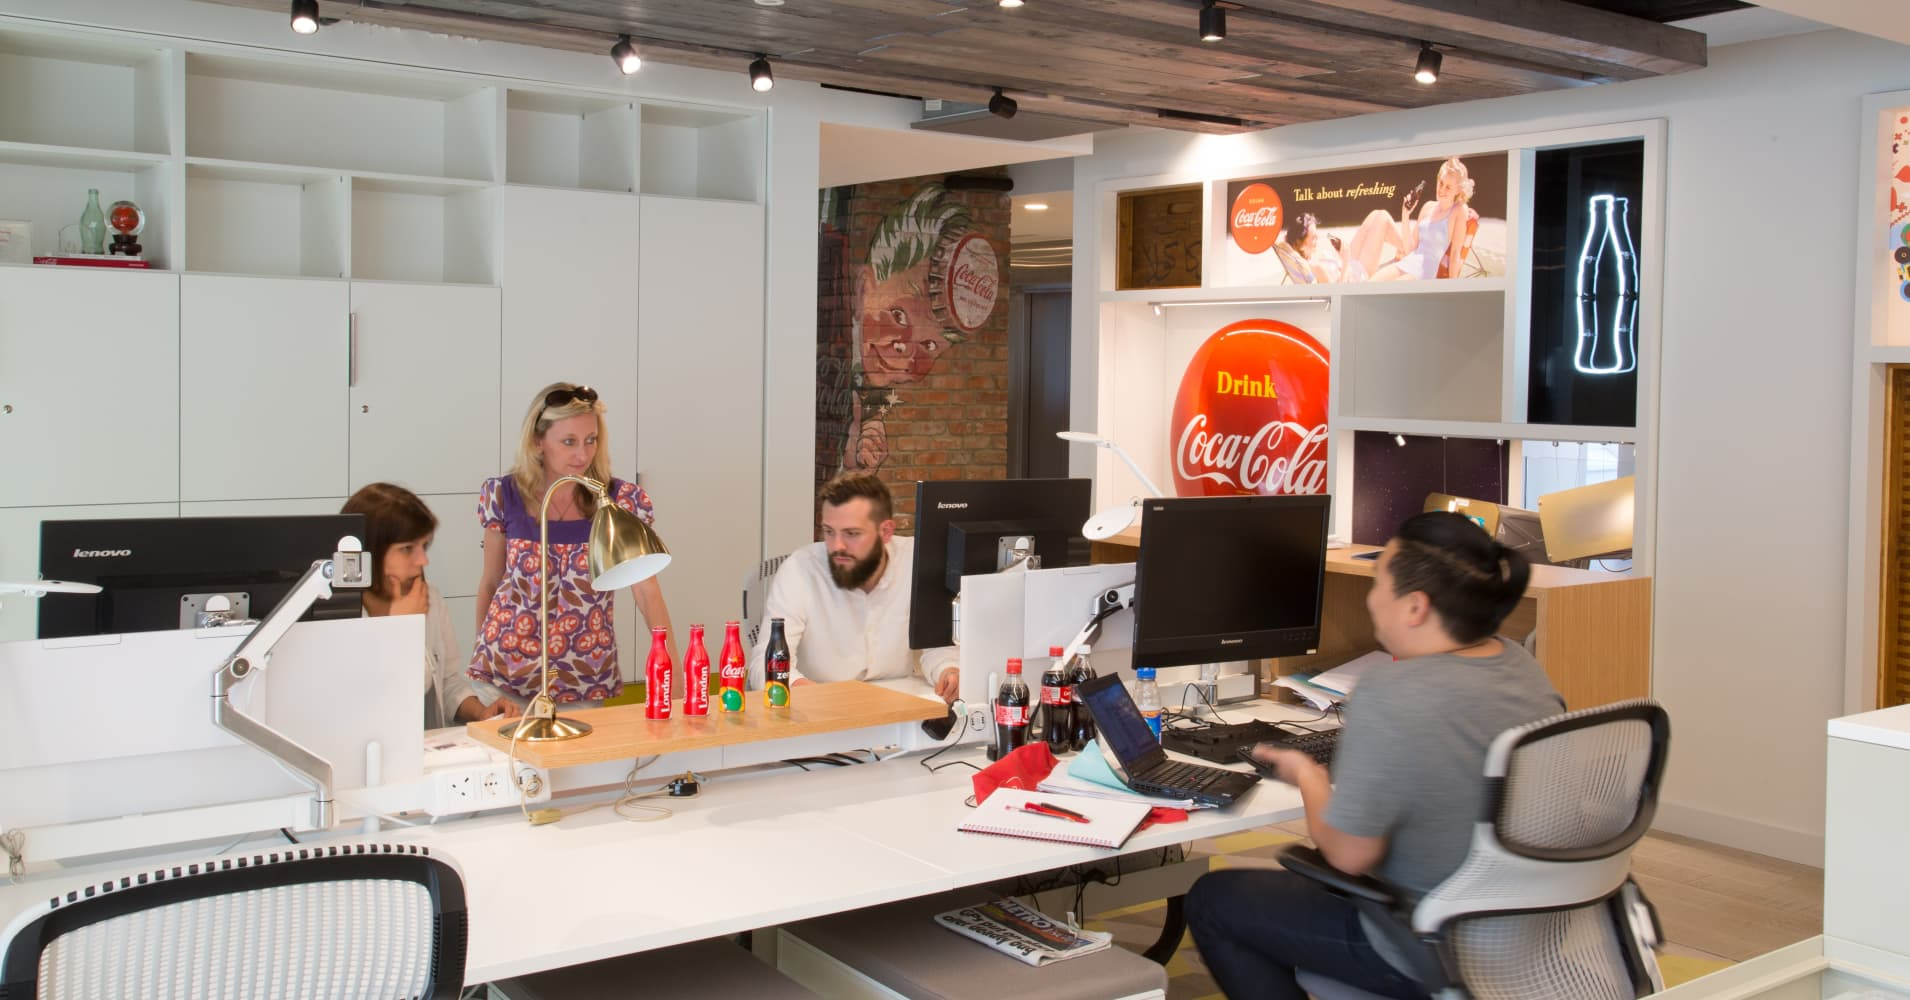 An open-office plan layout at Coca-Cola's GB HQ in London